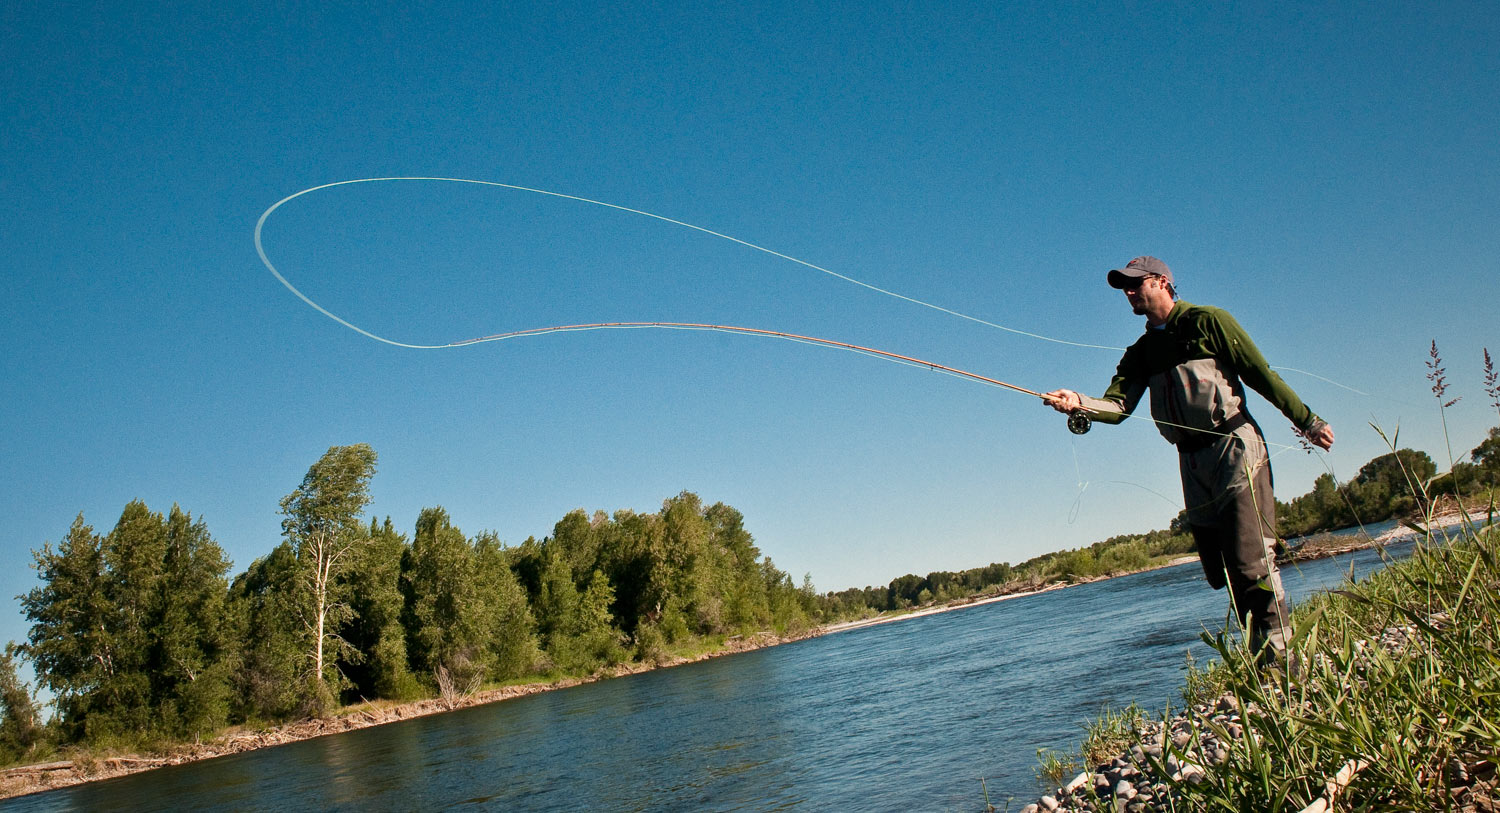 Lets Take A Minute To Look At The 5 Essentials Of A Good Fly Cast